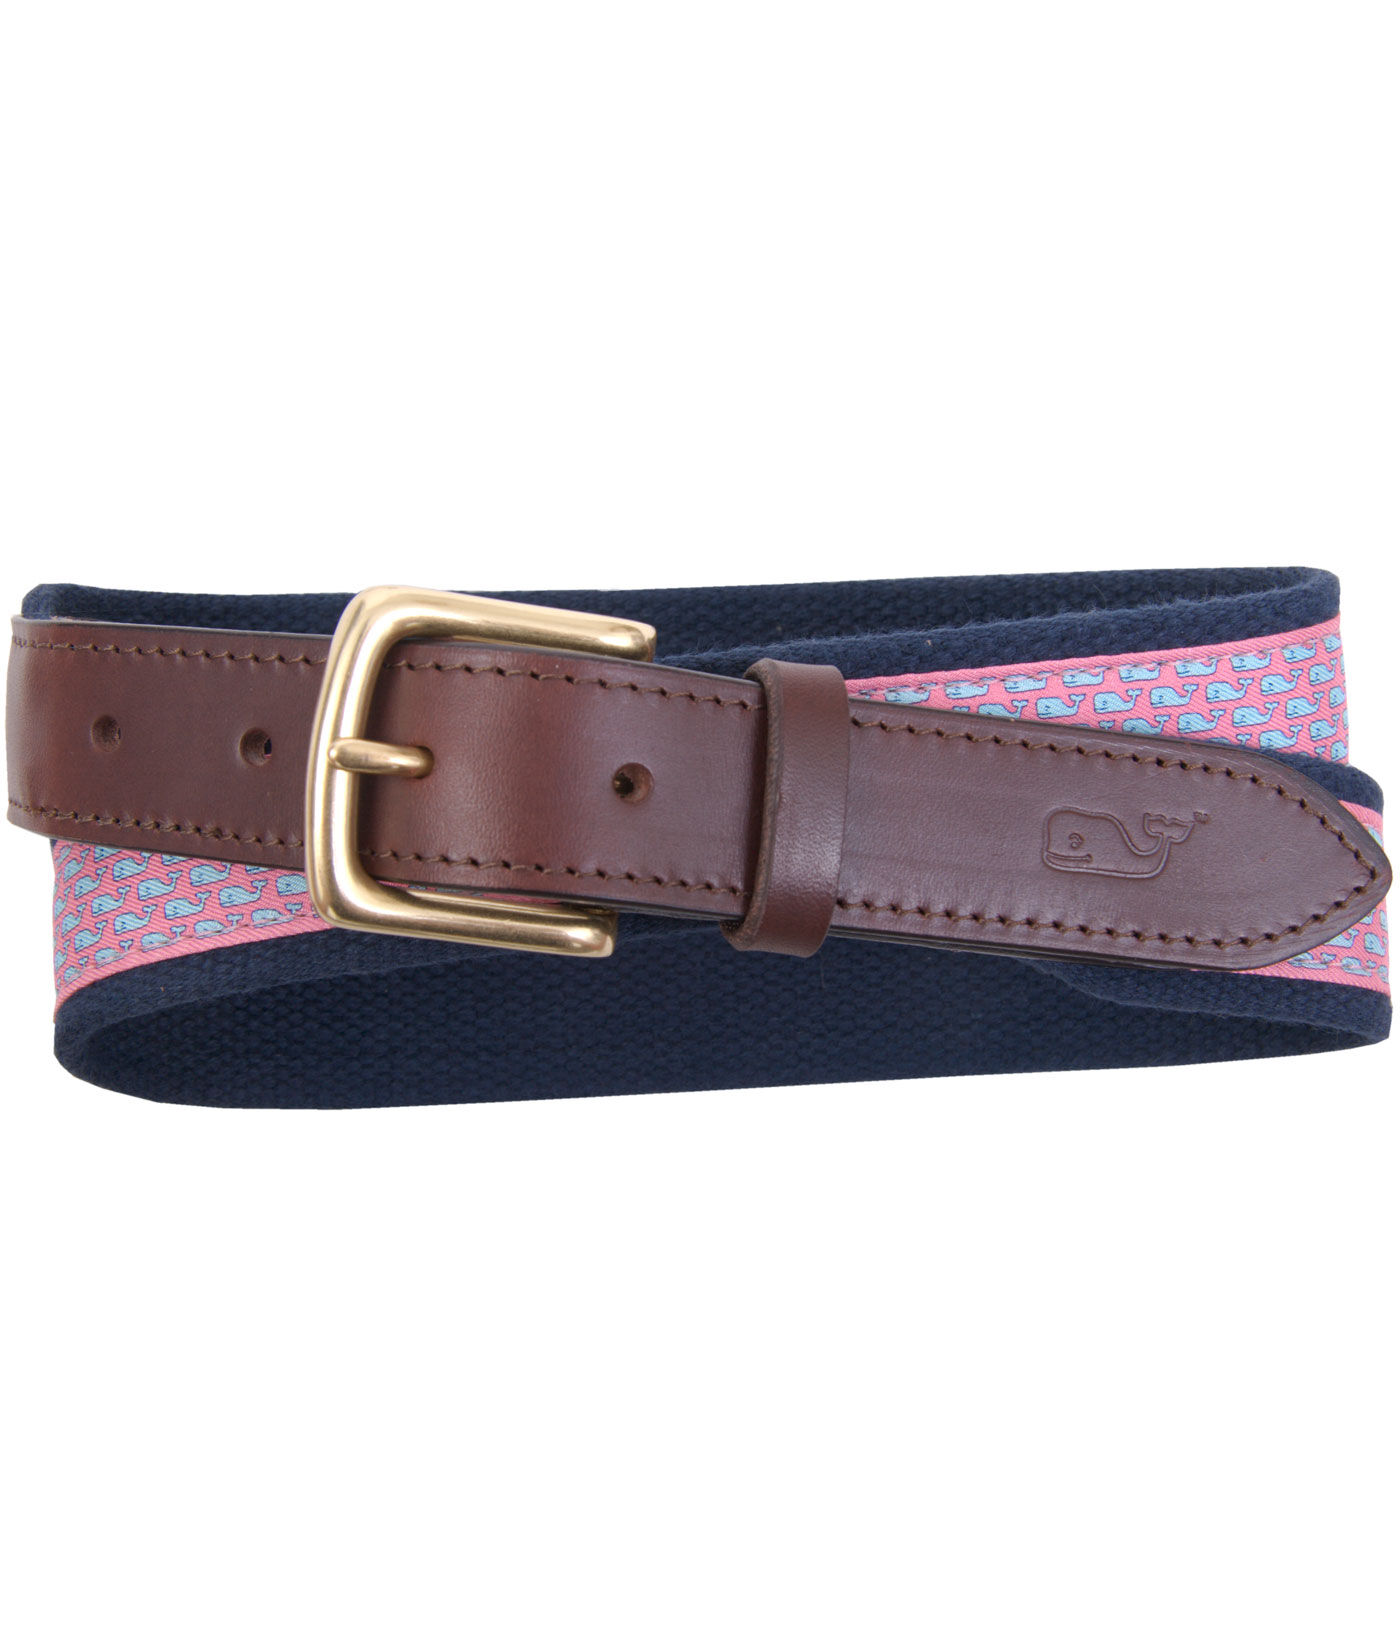 Shop Mens Belts. Mens Belts. Vineyard Whale Canvas Club Belt